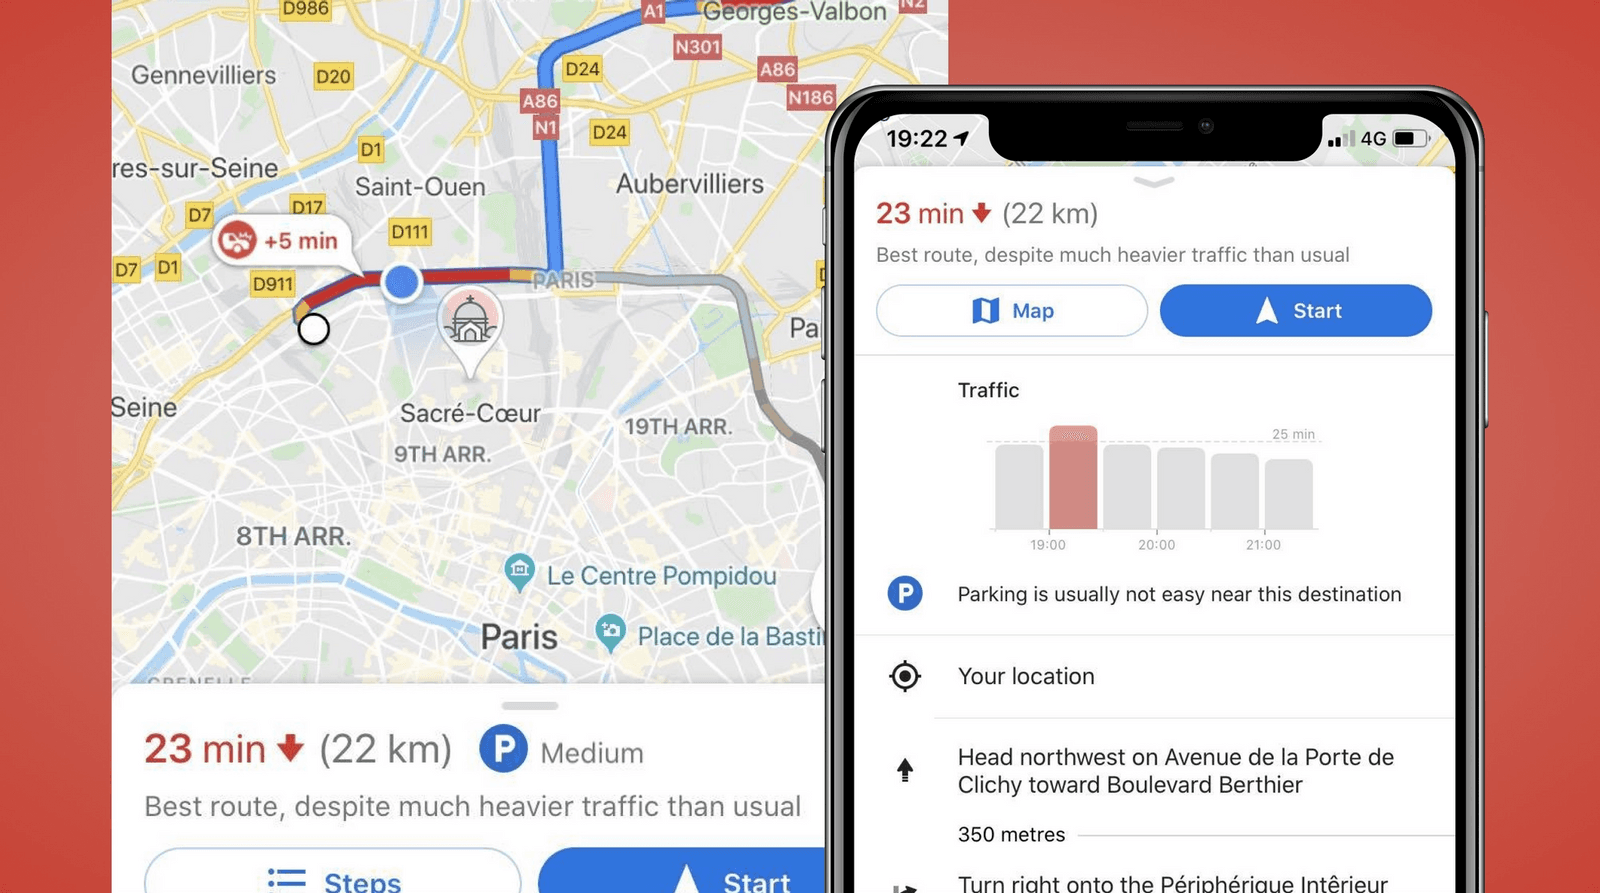 Google Maps screenshot showing the traffic situation with words and visualizations